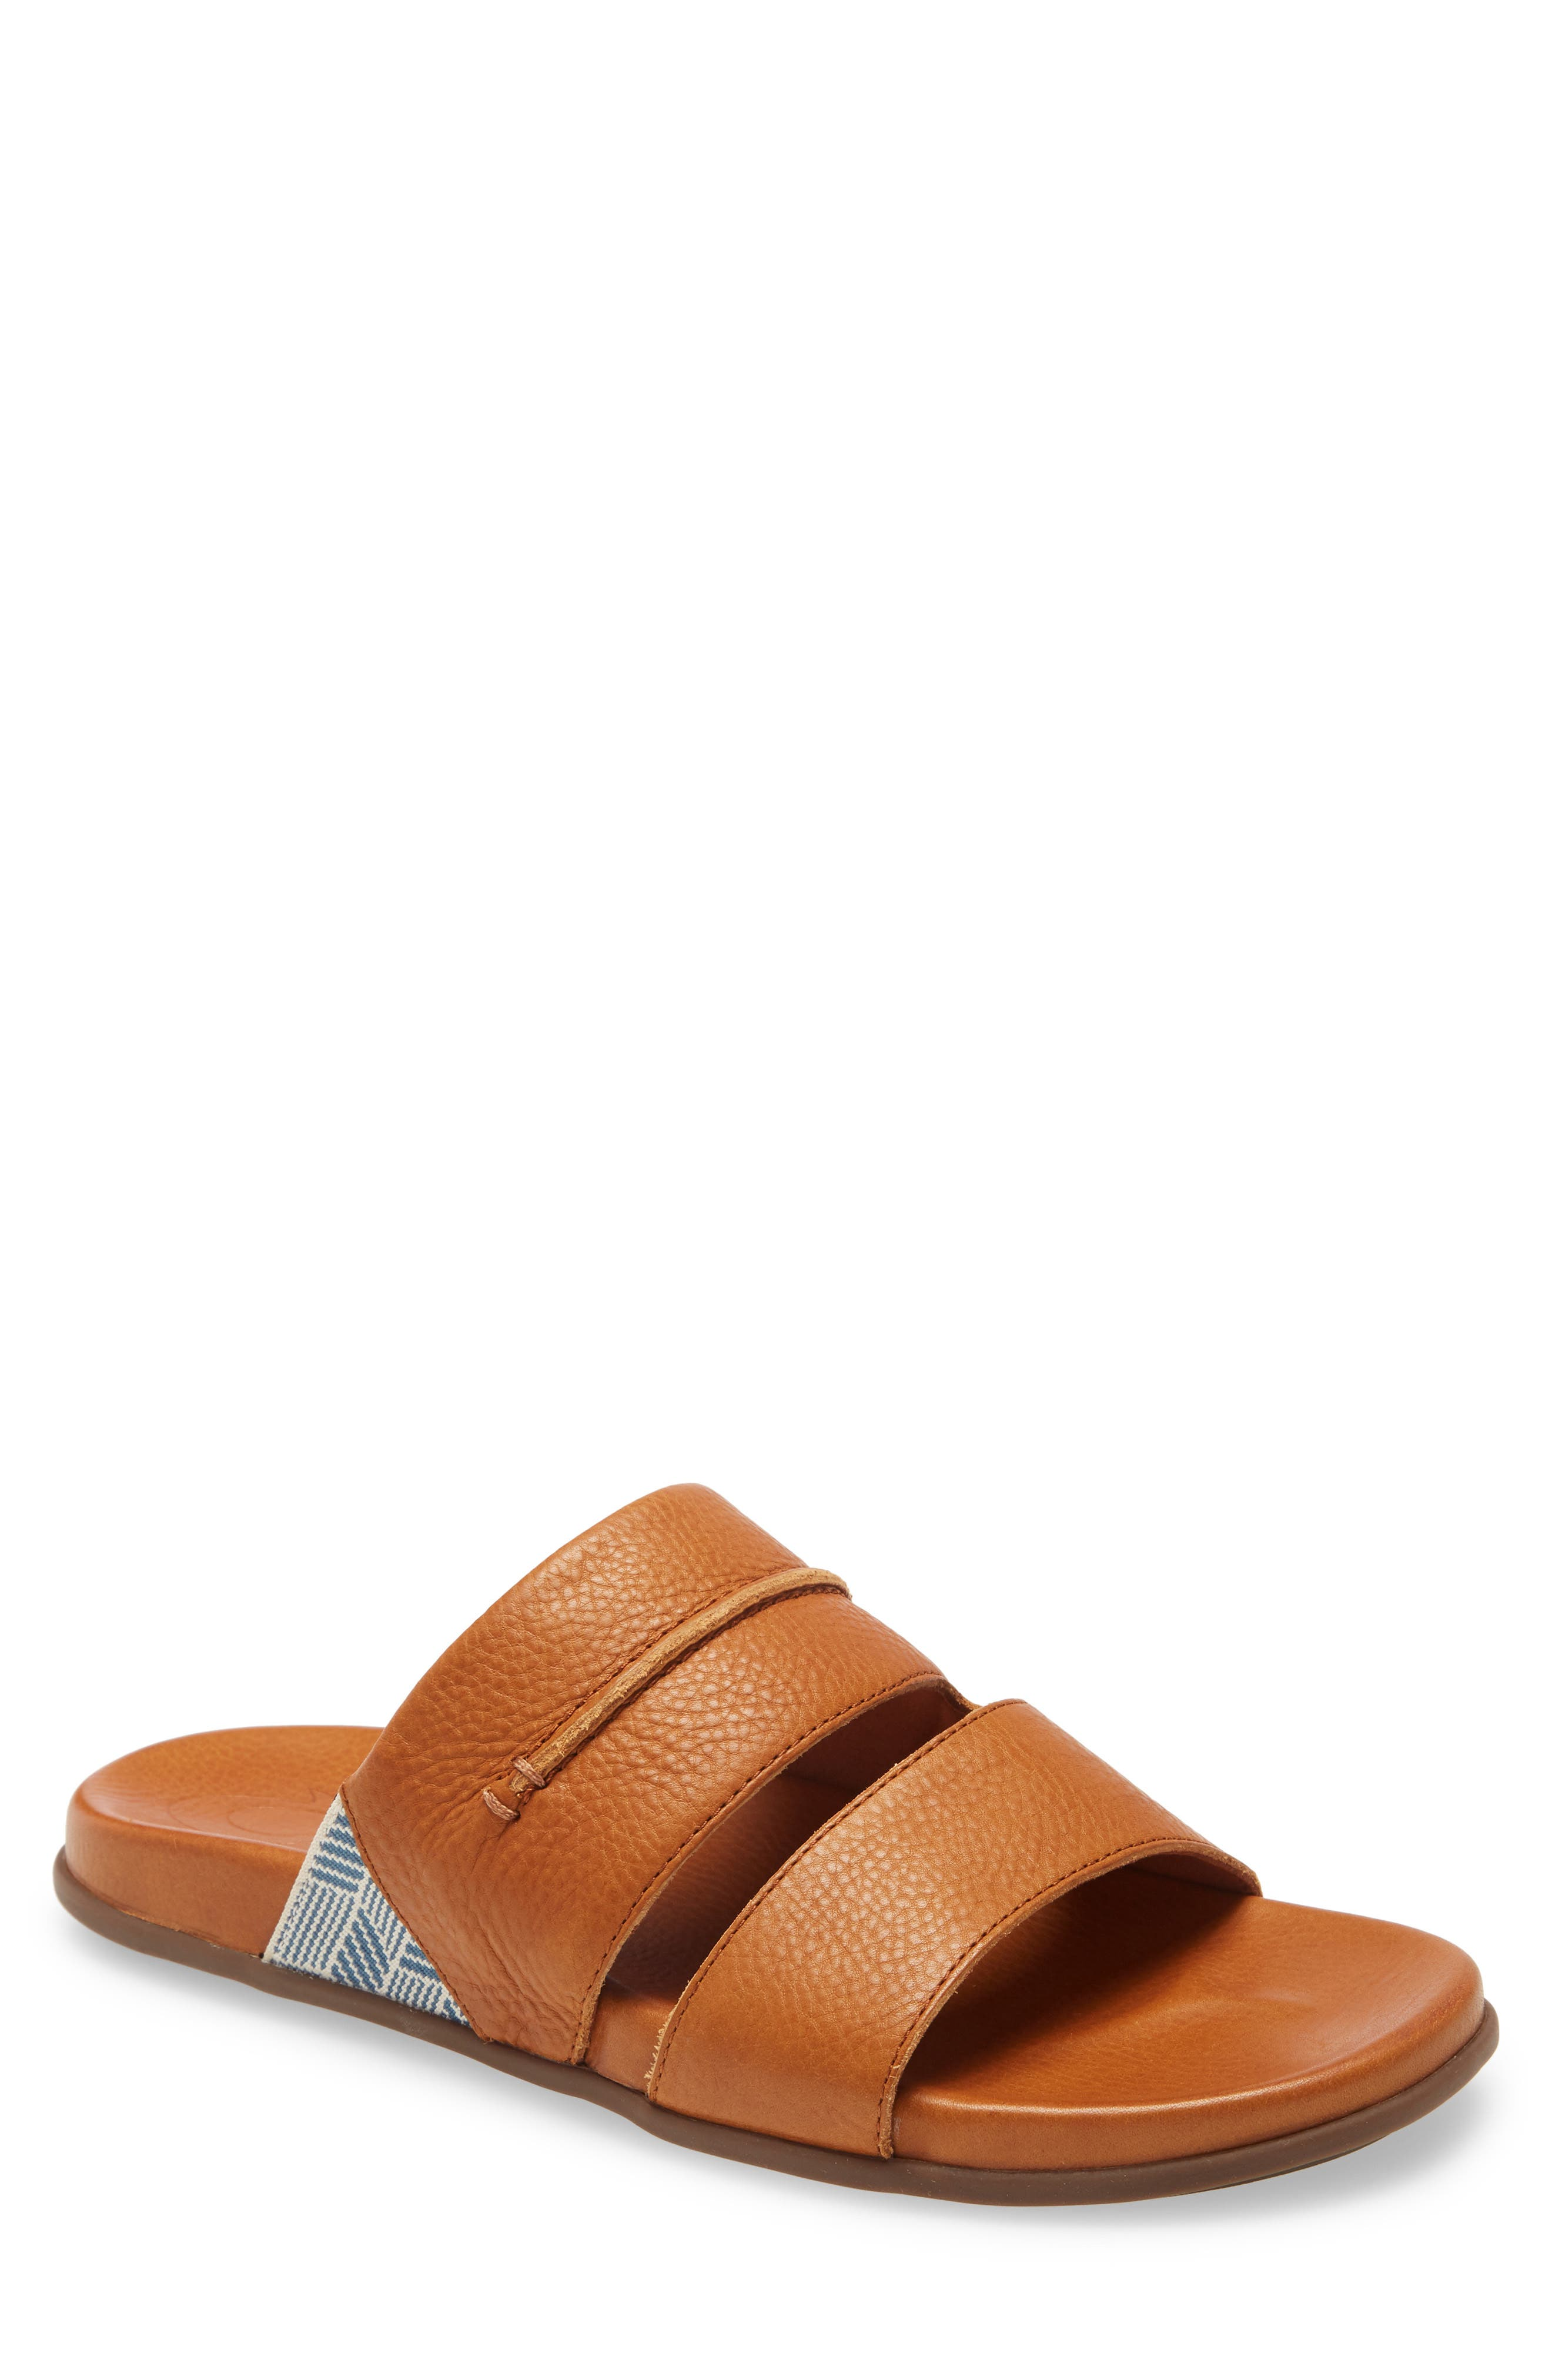 Full-grain, vegetable-tanned Italian leather elevates a laid-back sandal with an anatomical footbed for superior comfort. Style Name: Olukai Malino Olu Slide Sandal (Men). Style Number: 6027842. Available in stores.